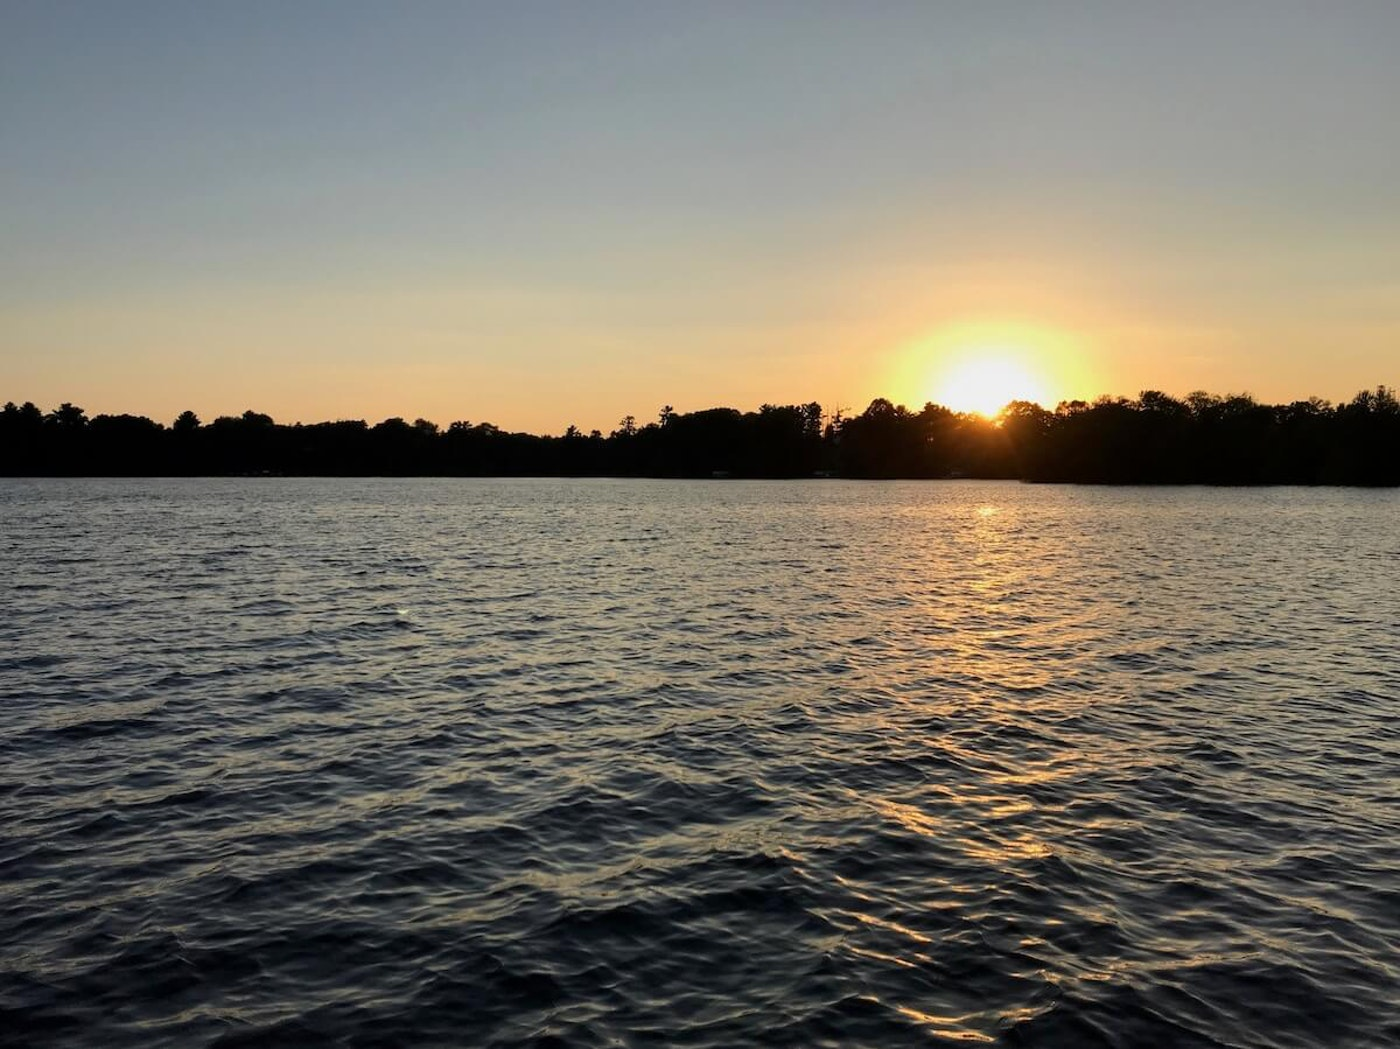 Few things can melt away life's daily challenges and spark gratitude quite like being on Lake Wissota at sunset. (Photo by Pat Kreitlow)